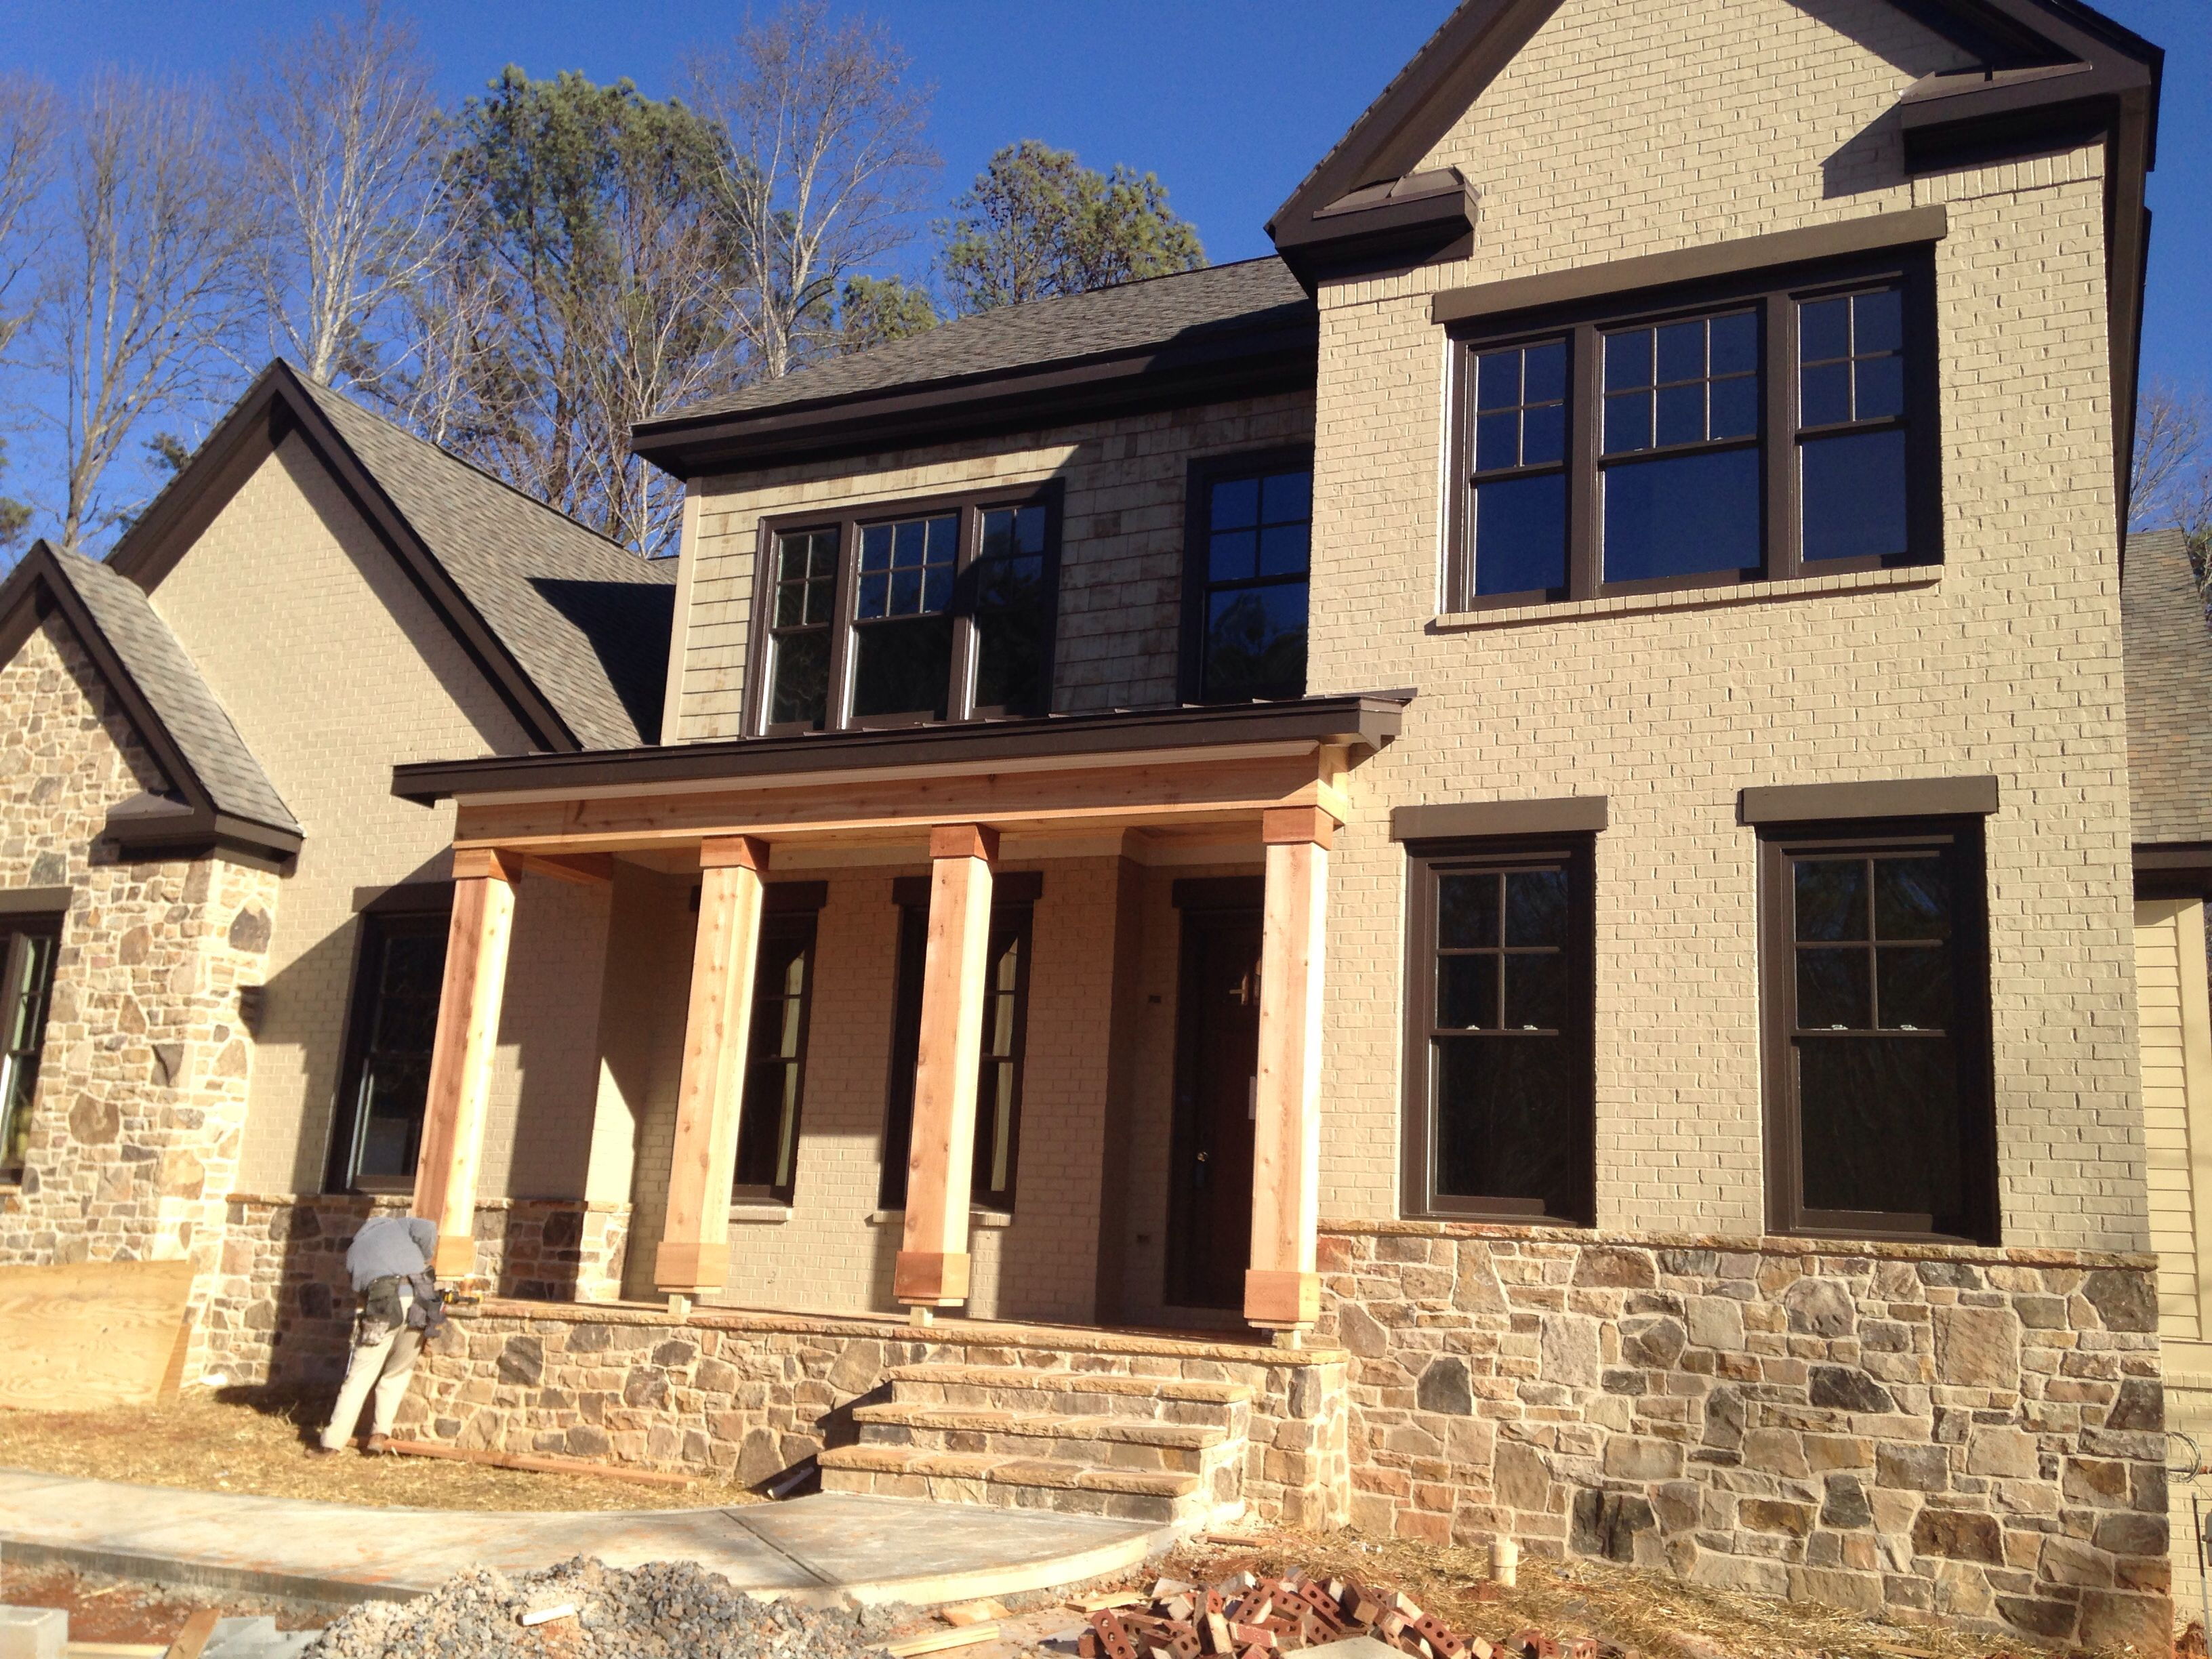 Front Elevation Of House With Porch : Painted brick mortar joint stone cedar front porch post